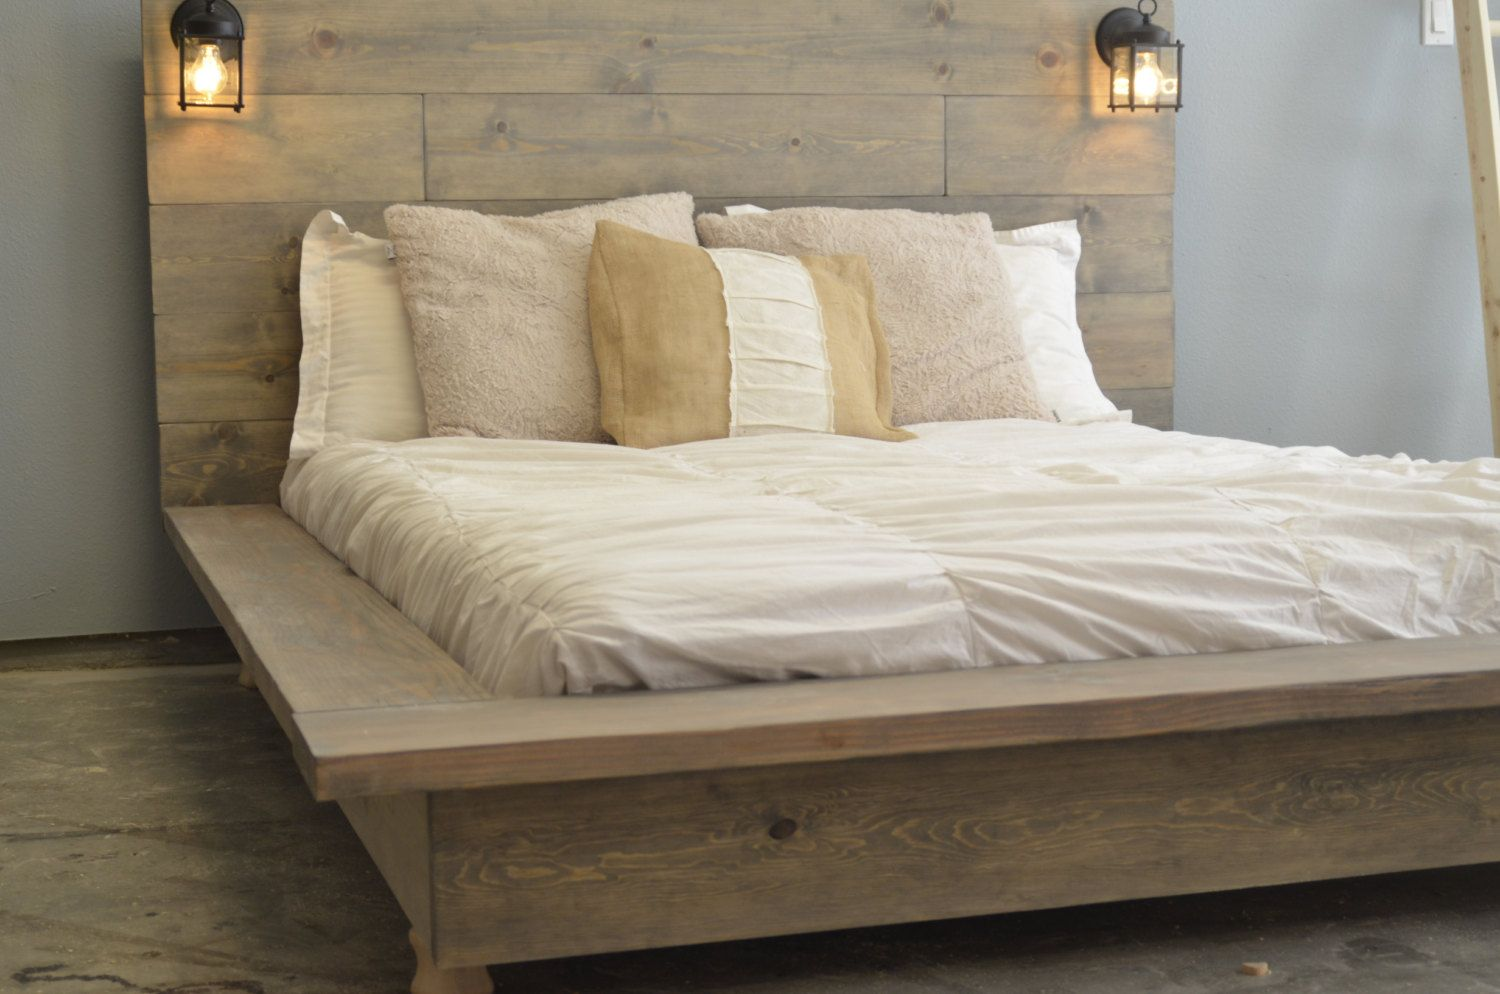 Rustic bed headboard - Floating Wood Platform Bed Frame With Lighted Headboard Quilmes